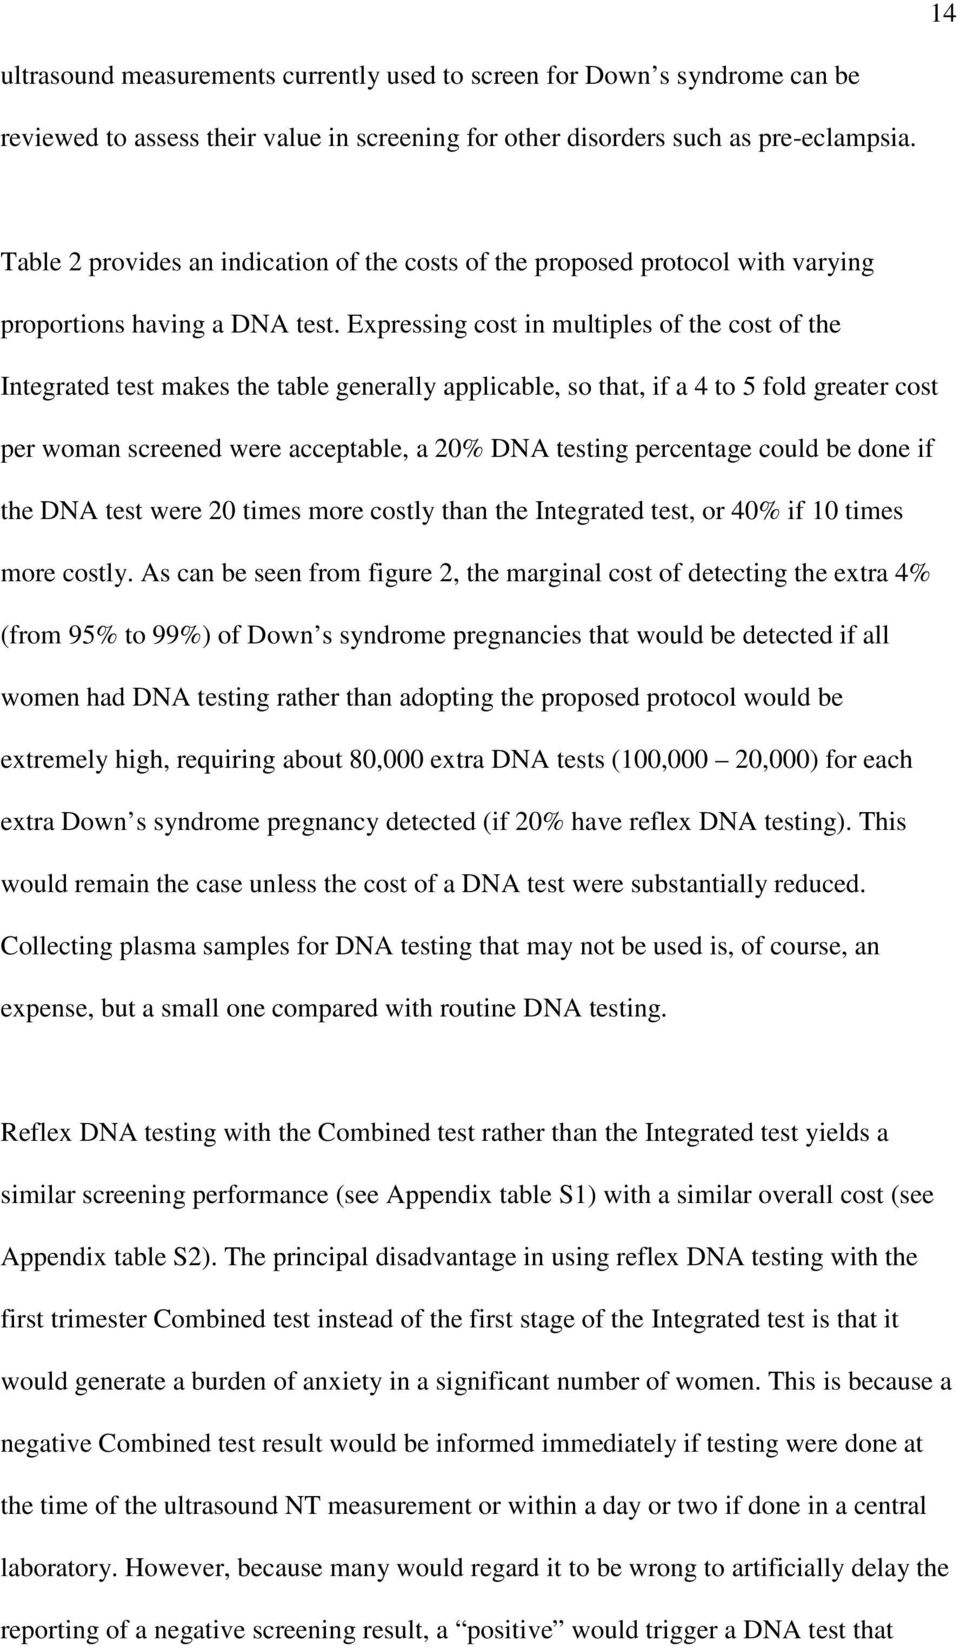 Expressing cost in multiples of the cost of the Integrated test makes the table generally applicable, so that, if a 4 to 5 fold greater cost per woman screened were acceptable, a 20% DNA testing